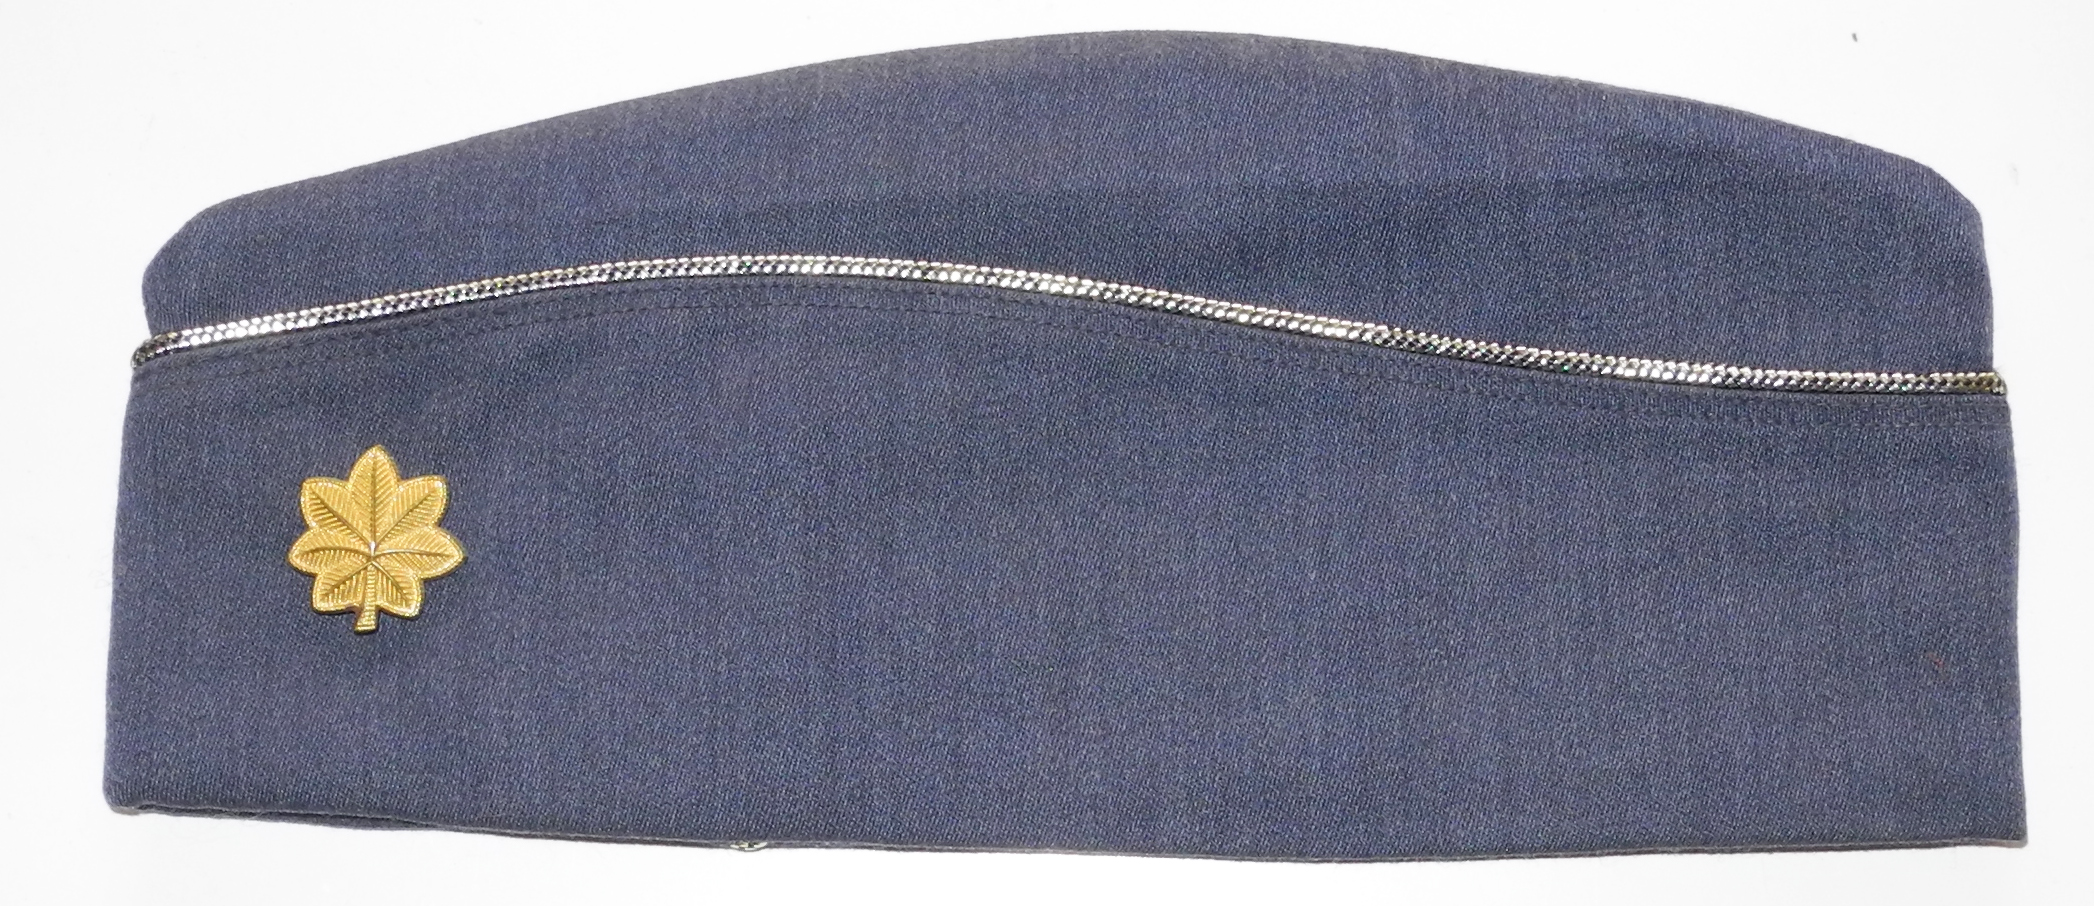 USAF 1960s officer's overseas cap with rank of major.